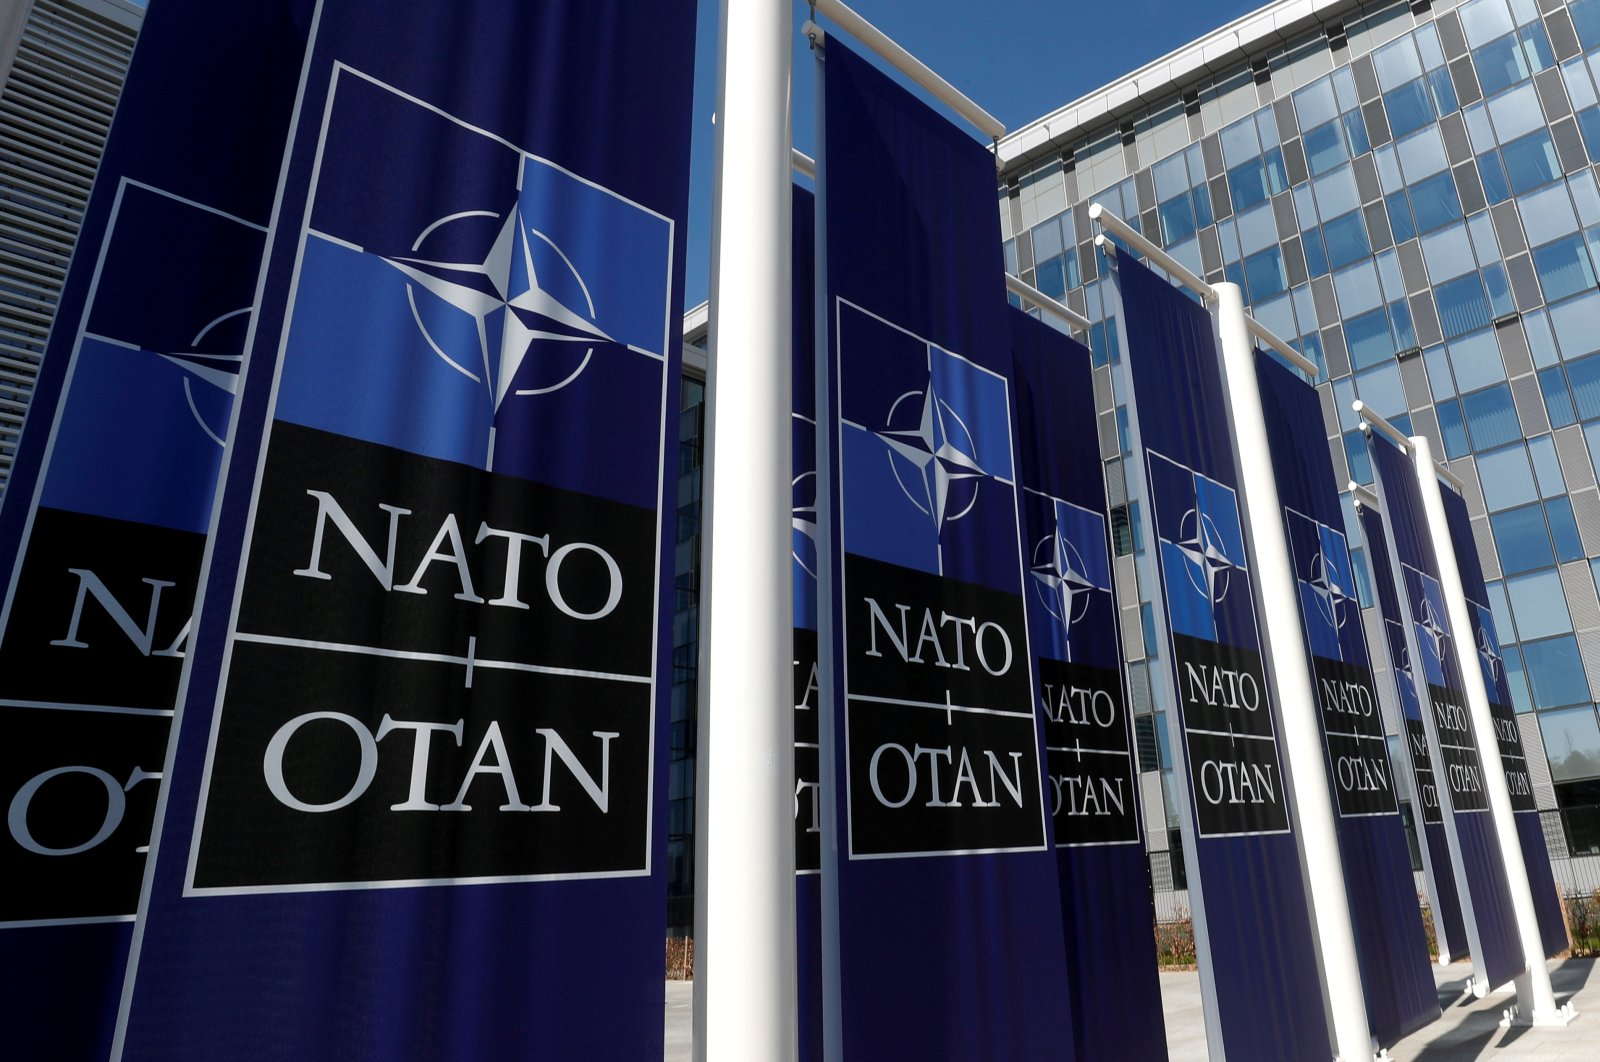 Banners displaying the NATO logo are placed at the entrance of the new NATO headquarters during the move to the new building, in Brussels, Belgium, April 19, 2018. (Reuters Photo)